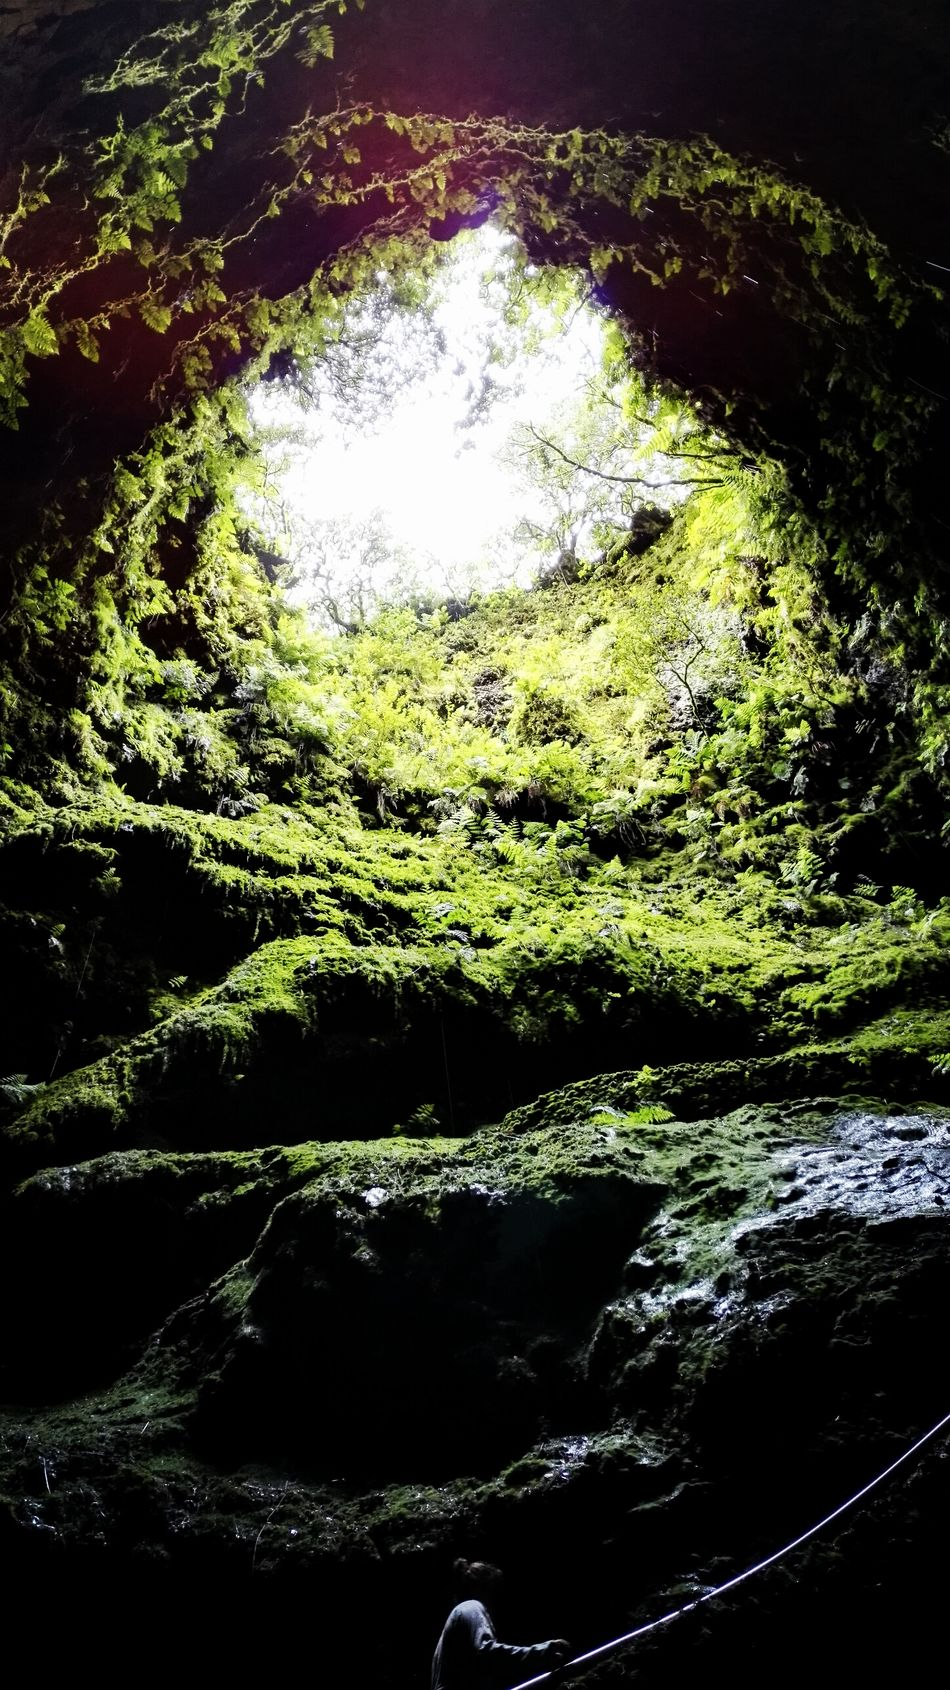 EyeEmBestPics Azoren Naturelovers EyeEm Best Shots - Nature EyeEm Best Shots Showcase July Myphotooftheday Eye4photography  Hiking Nature Photography Vulcanic Landscape EyeEm Nature Lover Green Tropfsteinhöhle Cave Caves Photography Terceira Island Low Angle View Fine Art Photography Light And Shadow Sky Azores Colour Of Life The Magic Mission Dramatic Angles The Secret Spaces